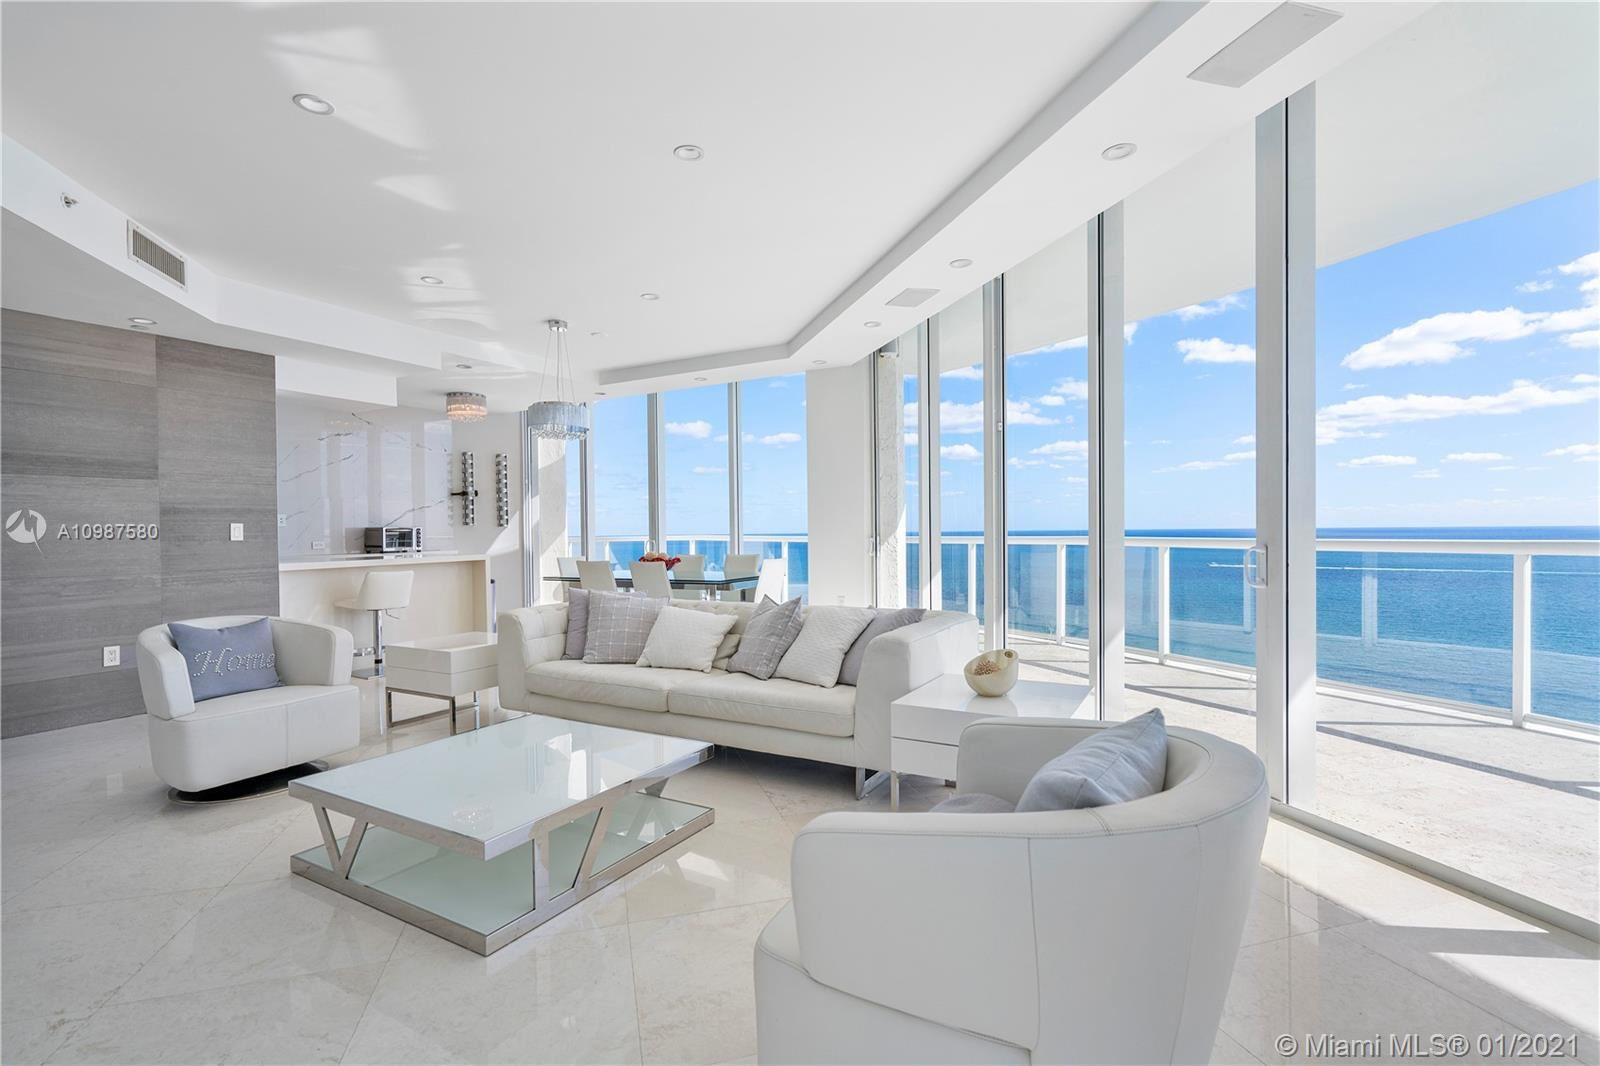 18671 Collins Ave #PH1, Sunny Isles, FL 33160 - #: A10987580